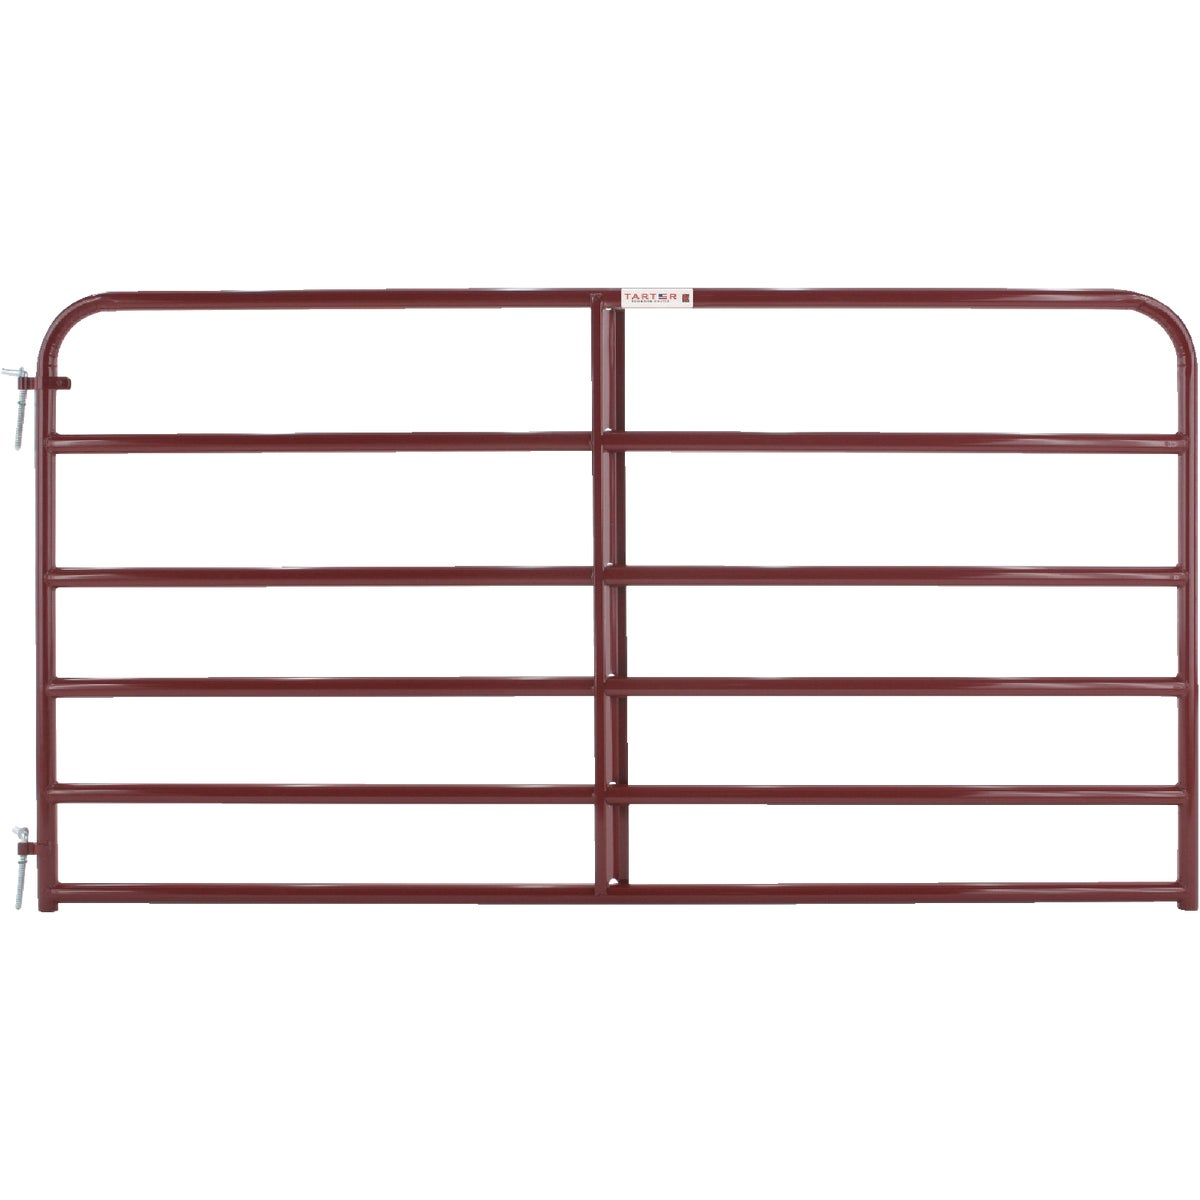 8' 6BAR RED ECONO GATE